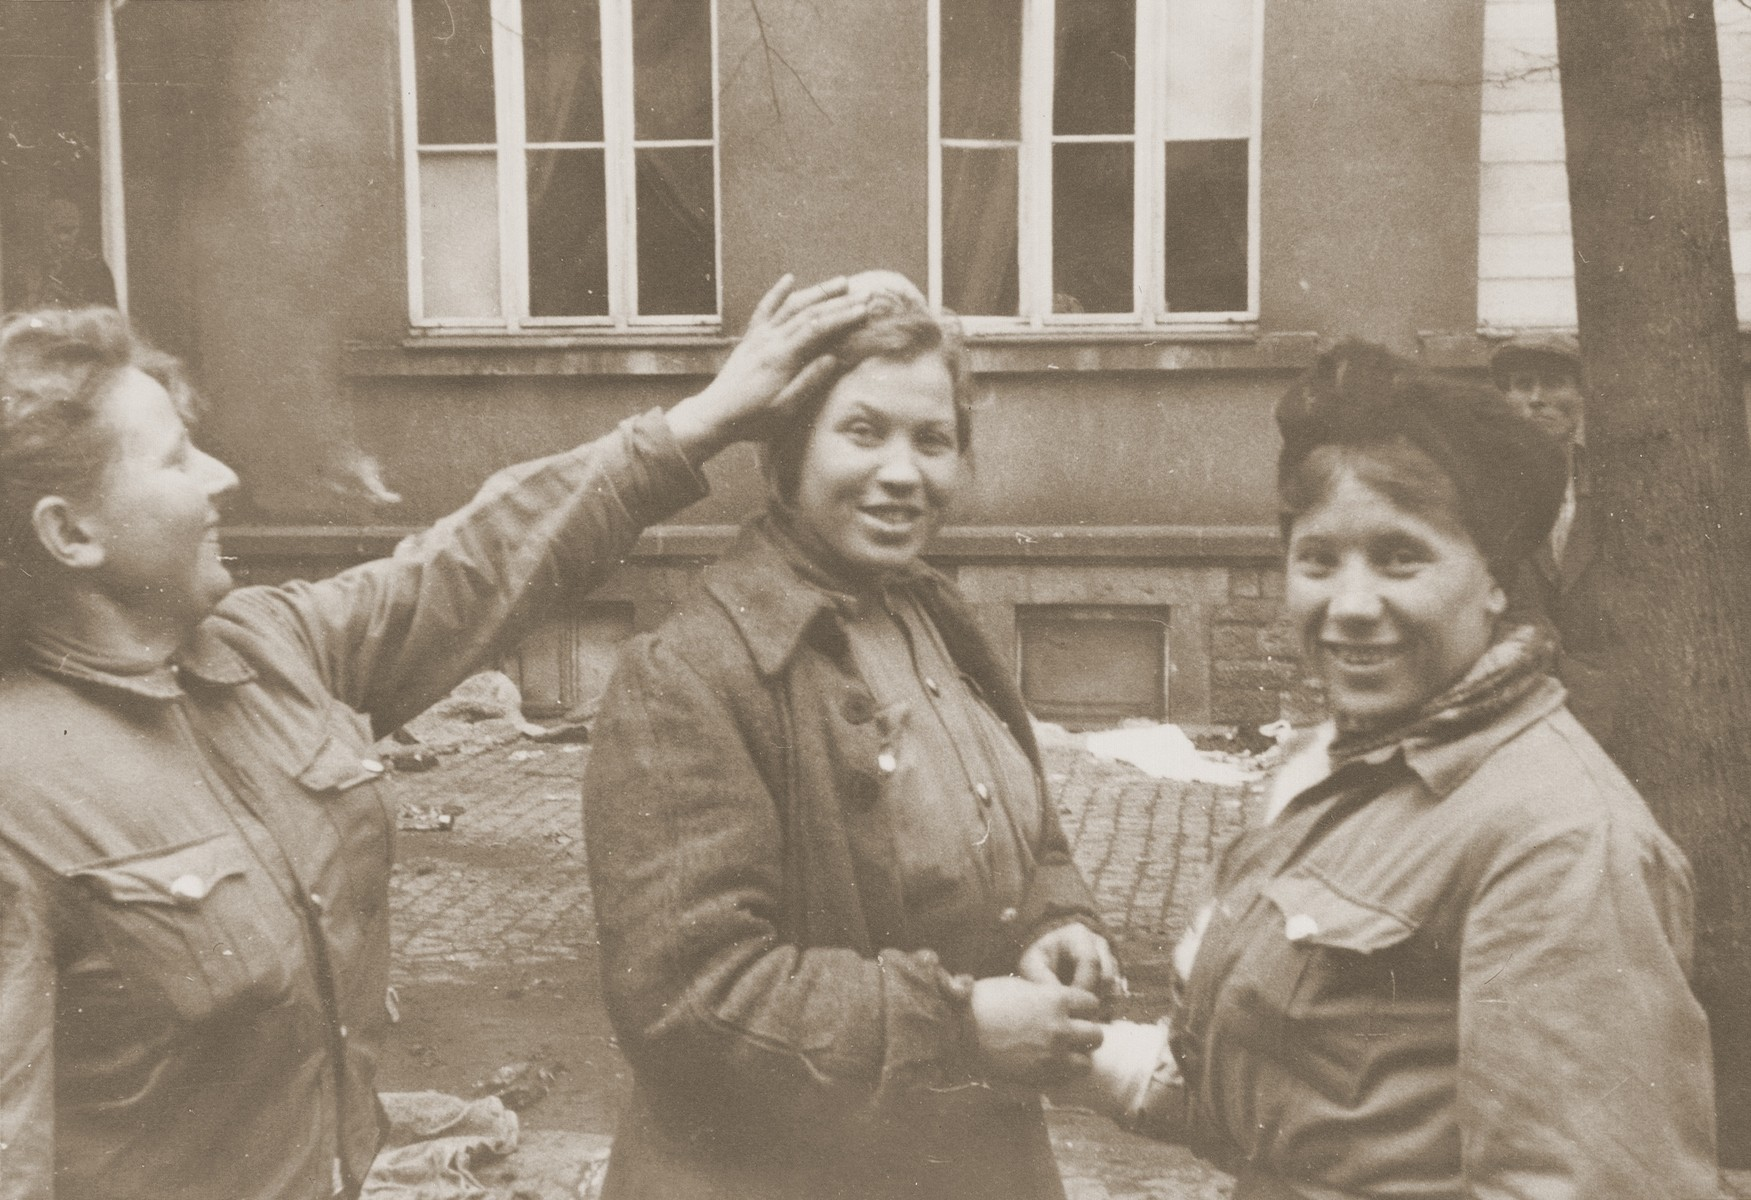 Three female DPs in Dillenburg after the liberation of the area by U.S. troops.